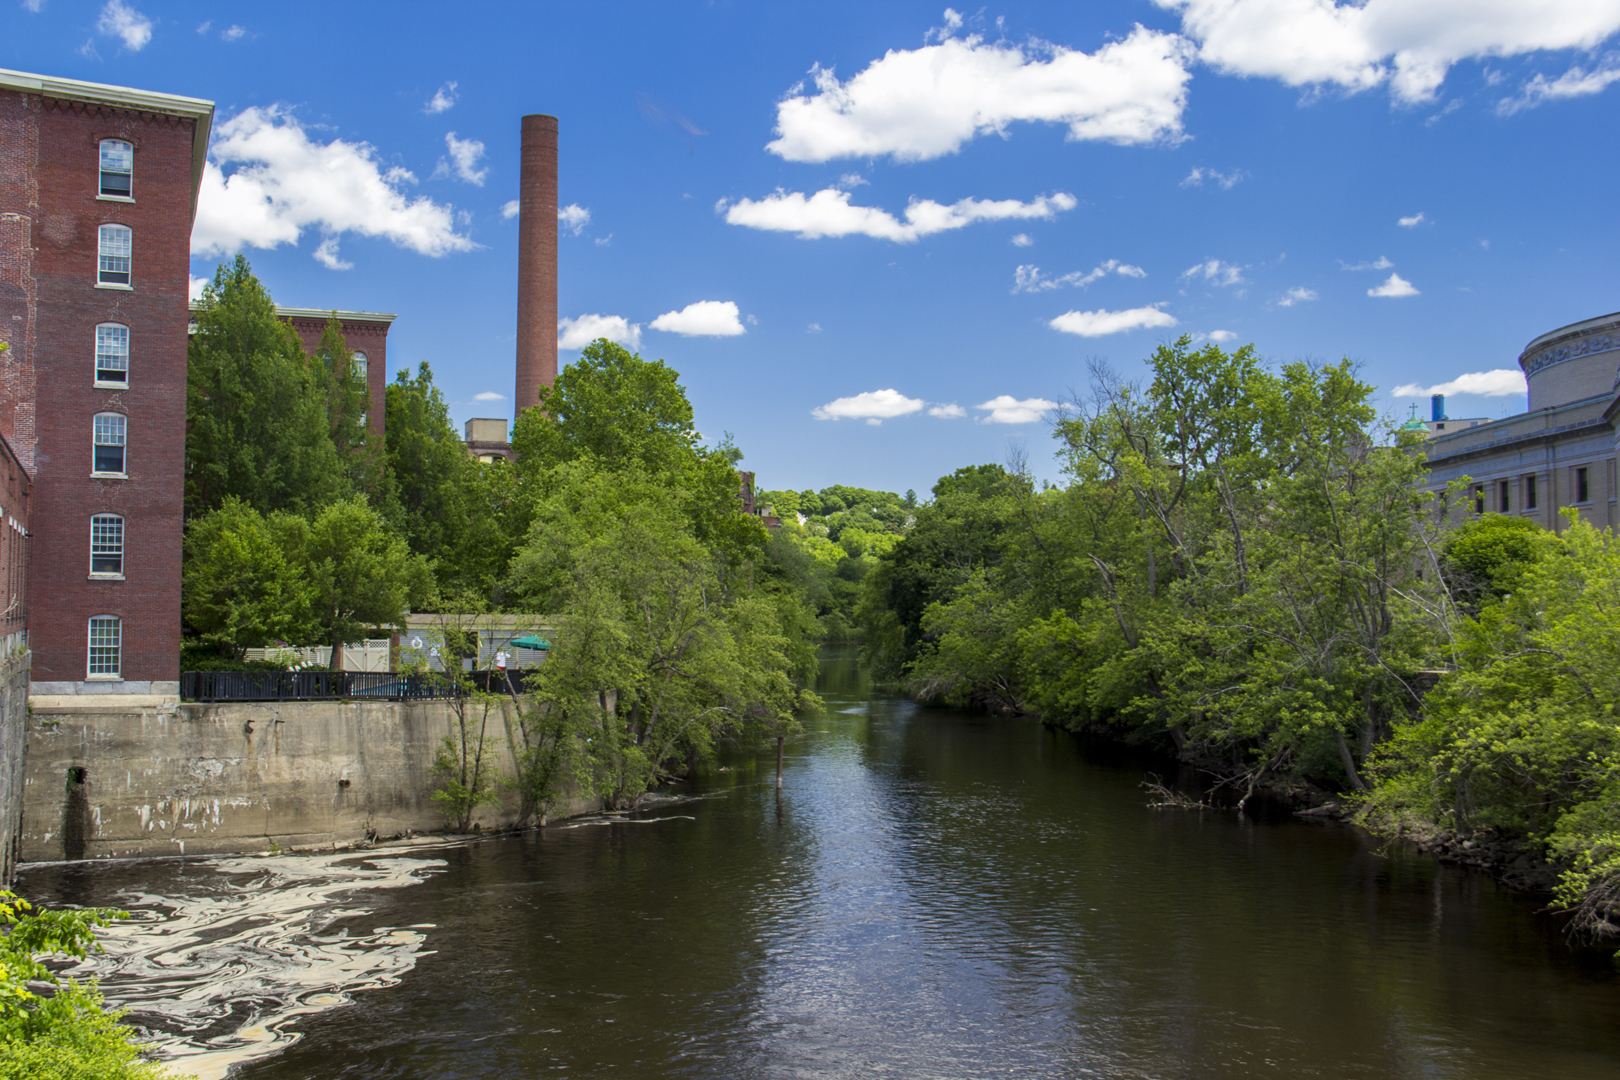 LowellMillCity_015